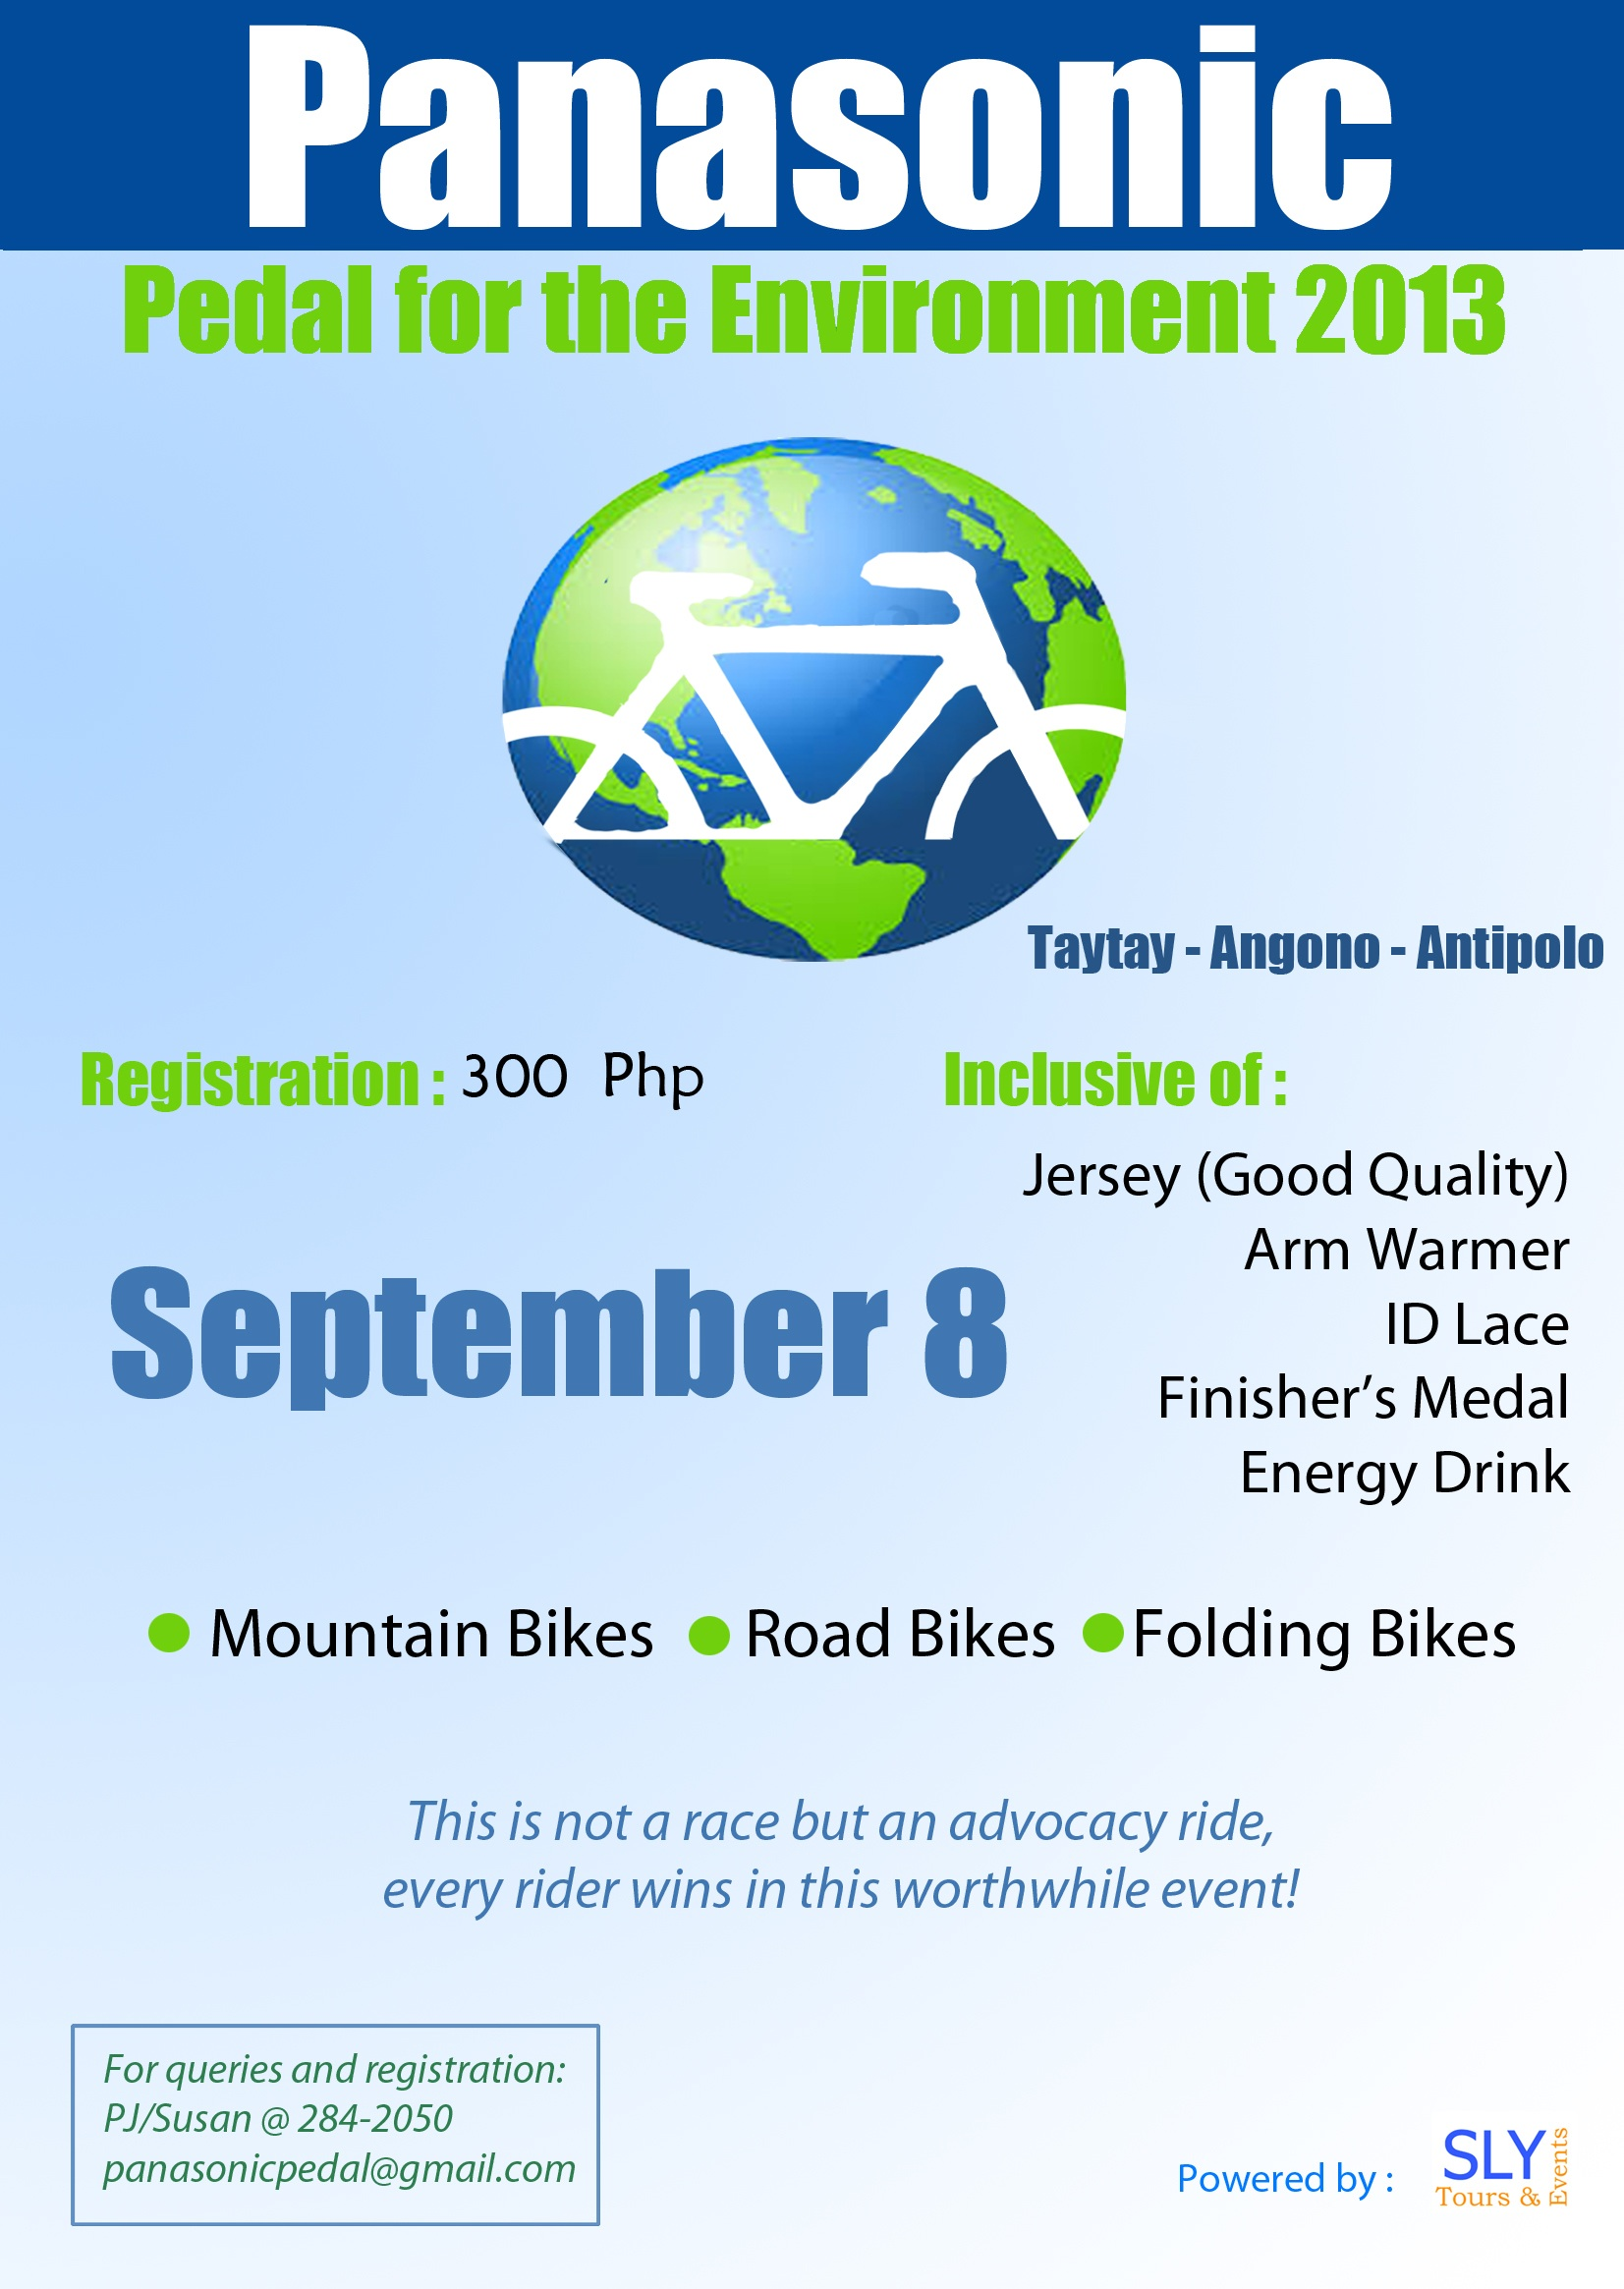 panasonic-pedal-for-the-environment-2013-poster